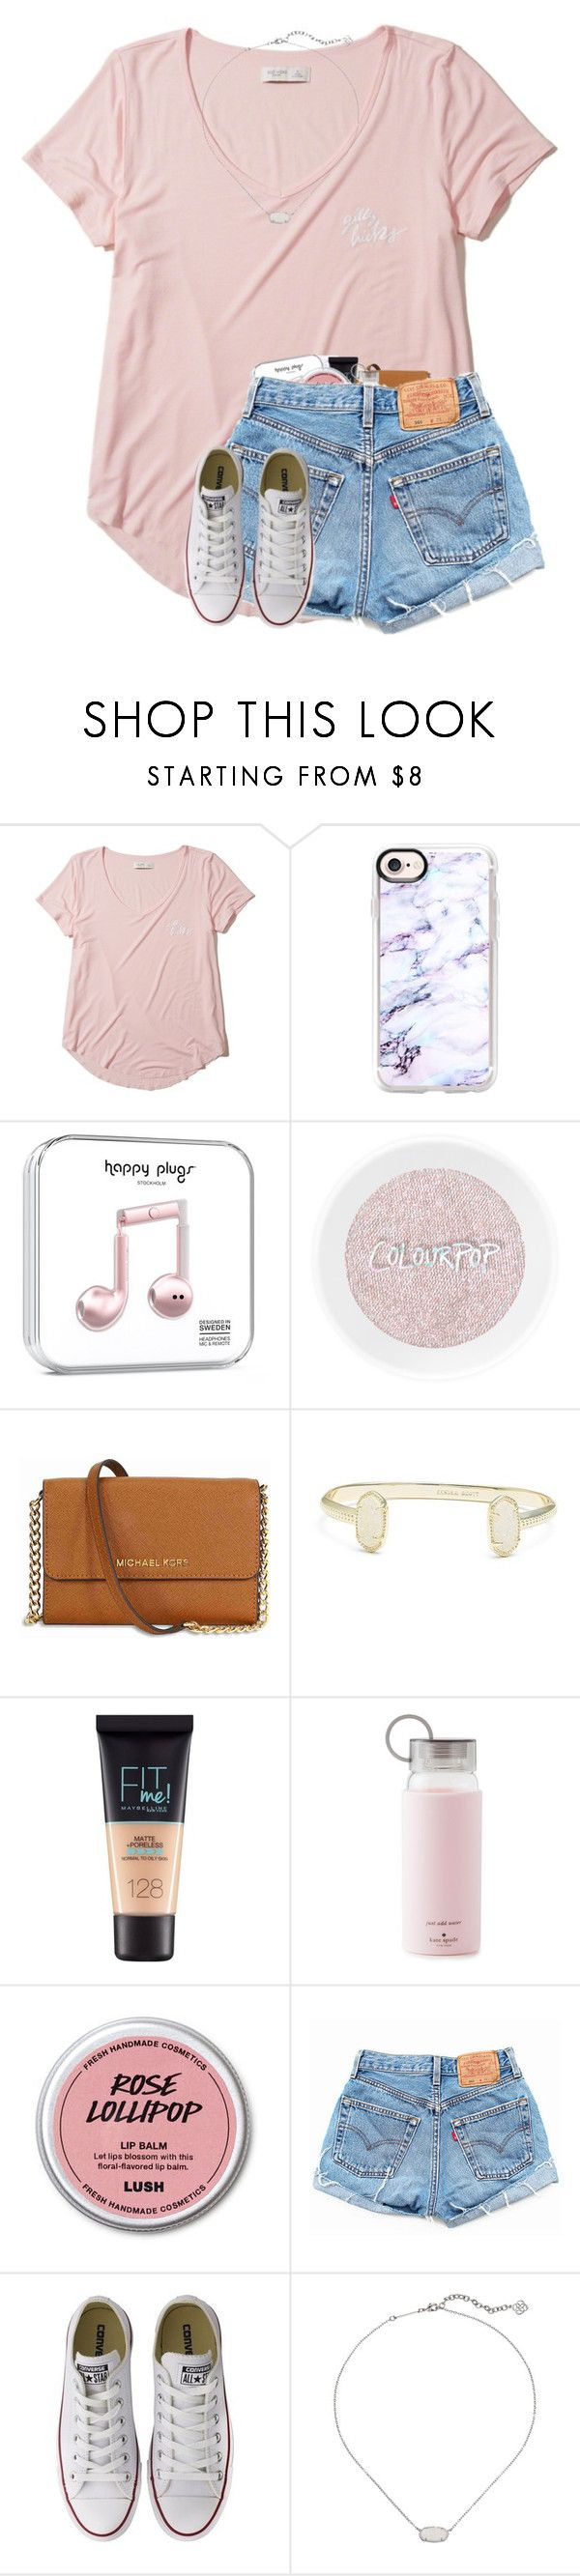 """""""(Unstoppable)"""" by mmadss ❤ liked on Polyvore featuring Hollister Co., Casetify, Michael Kors, Kendra Scott, Maybelline, Kate Spade, Levi's and Converse"""